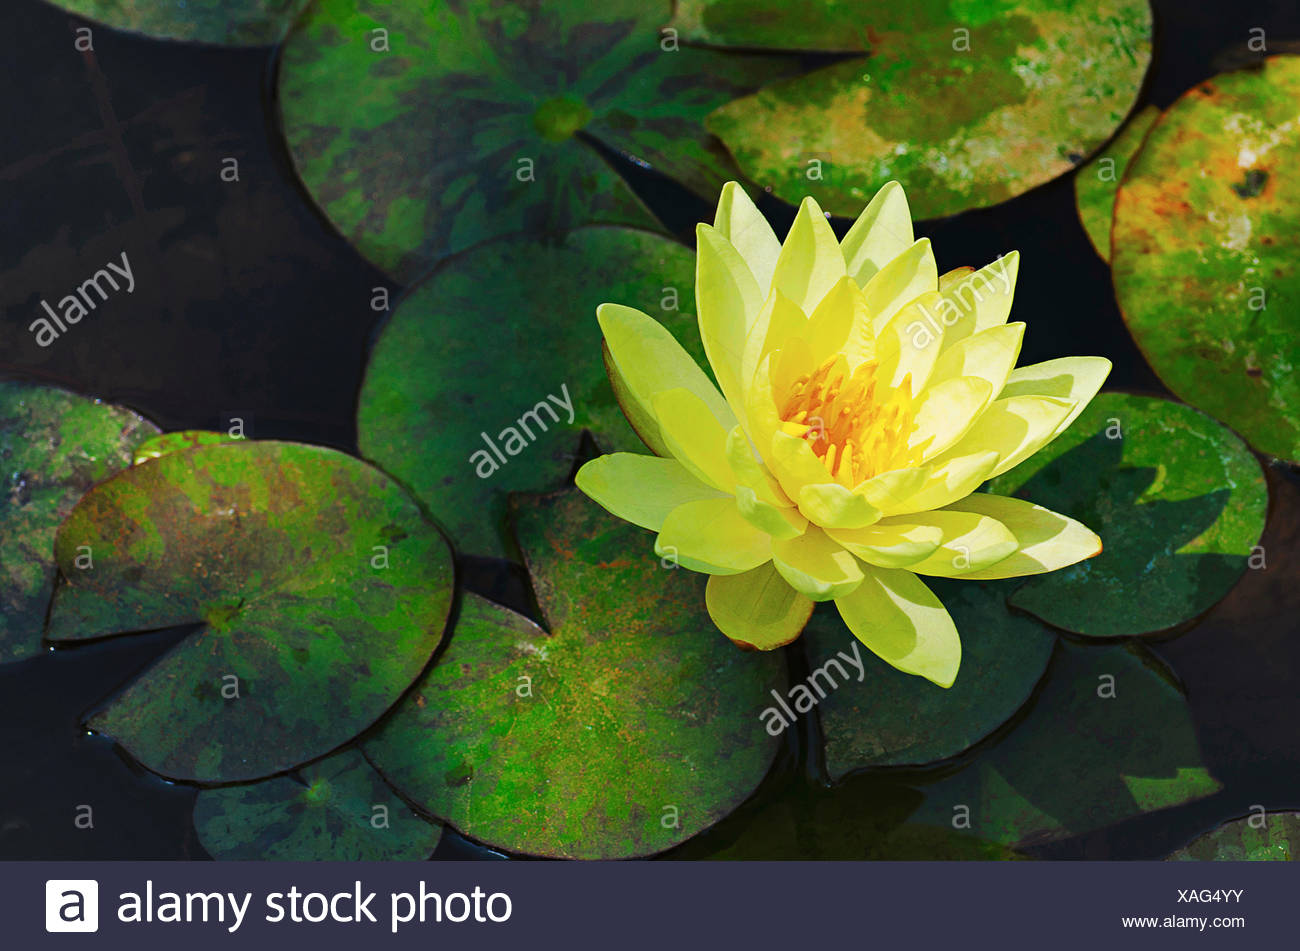 Yellow Lotus Flower With Green Leaves In The Background In An